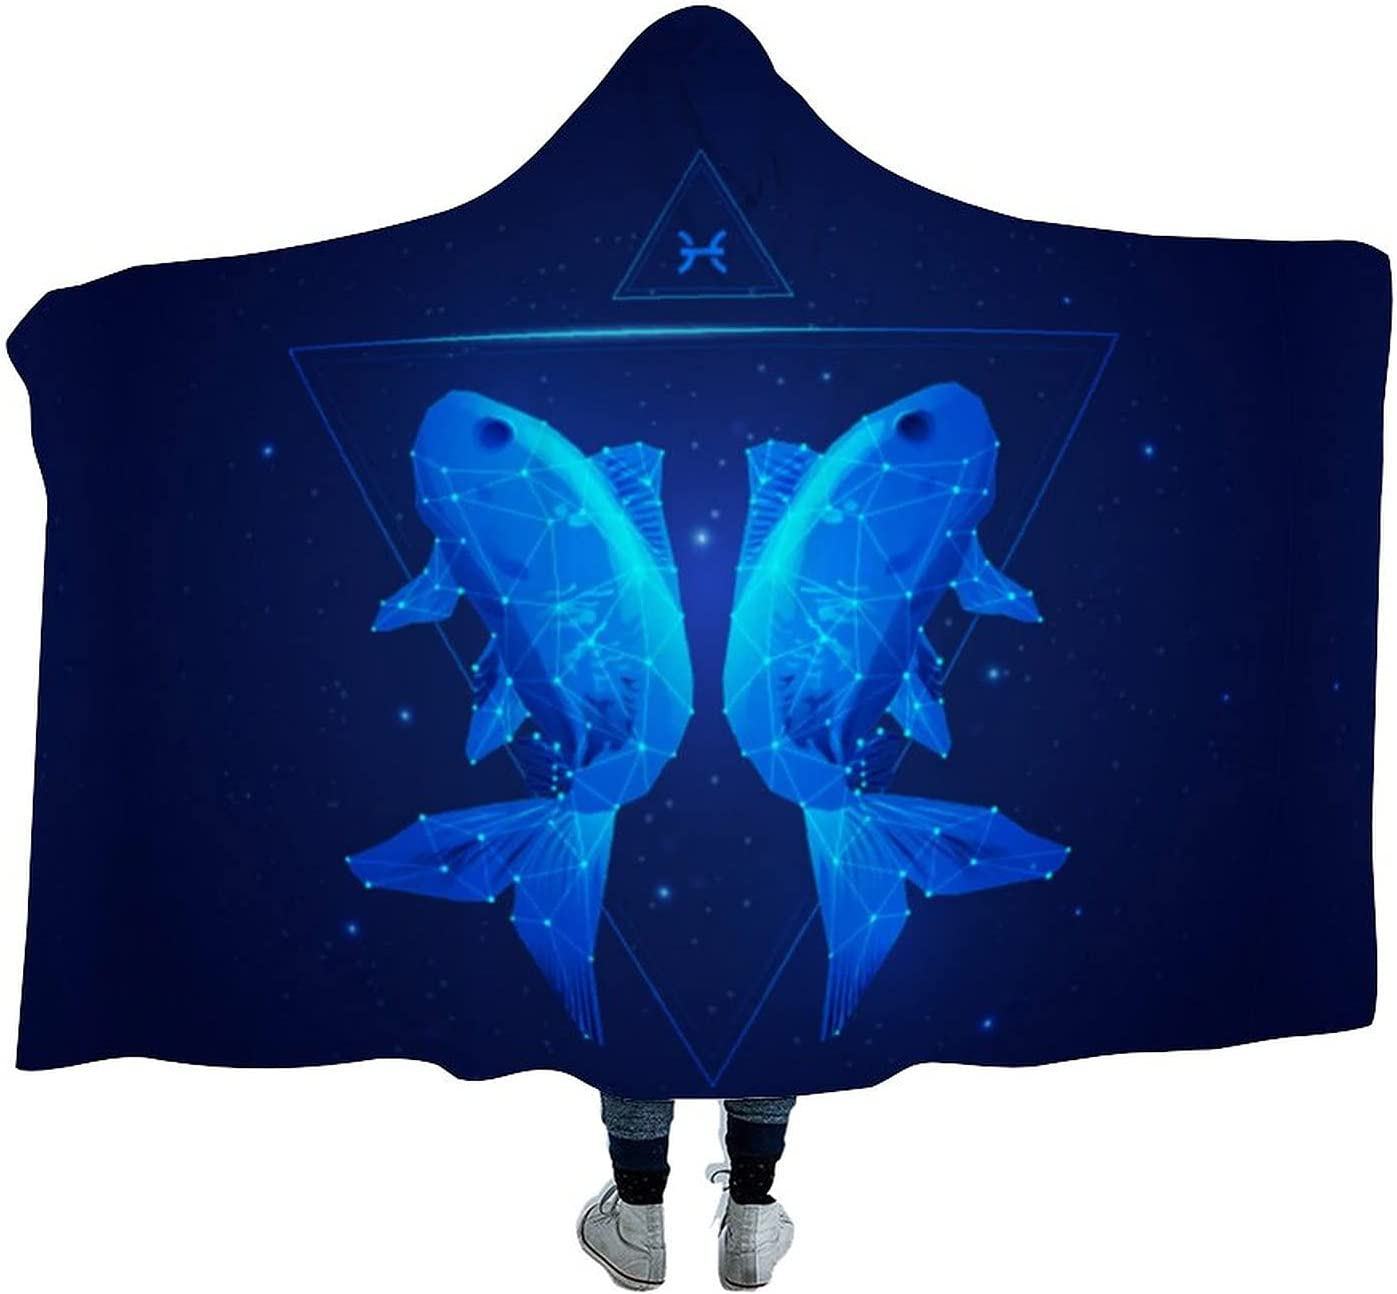 Pisces Wearable Velvet Hooded Throw Dur Clearance SALE Limited time Soft Super Warm Phoenix Mall Blanket